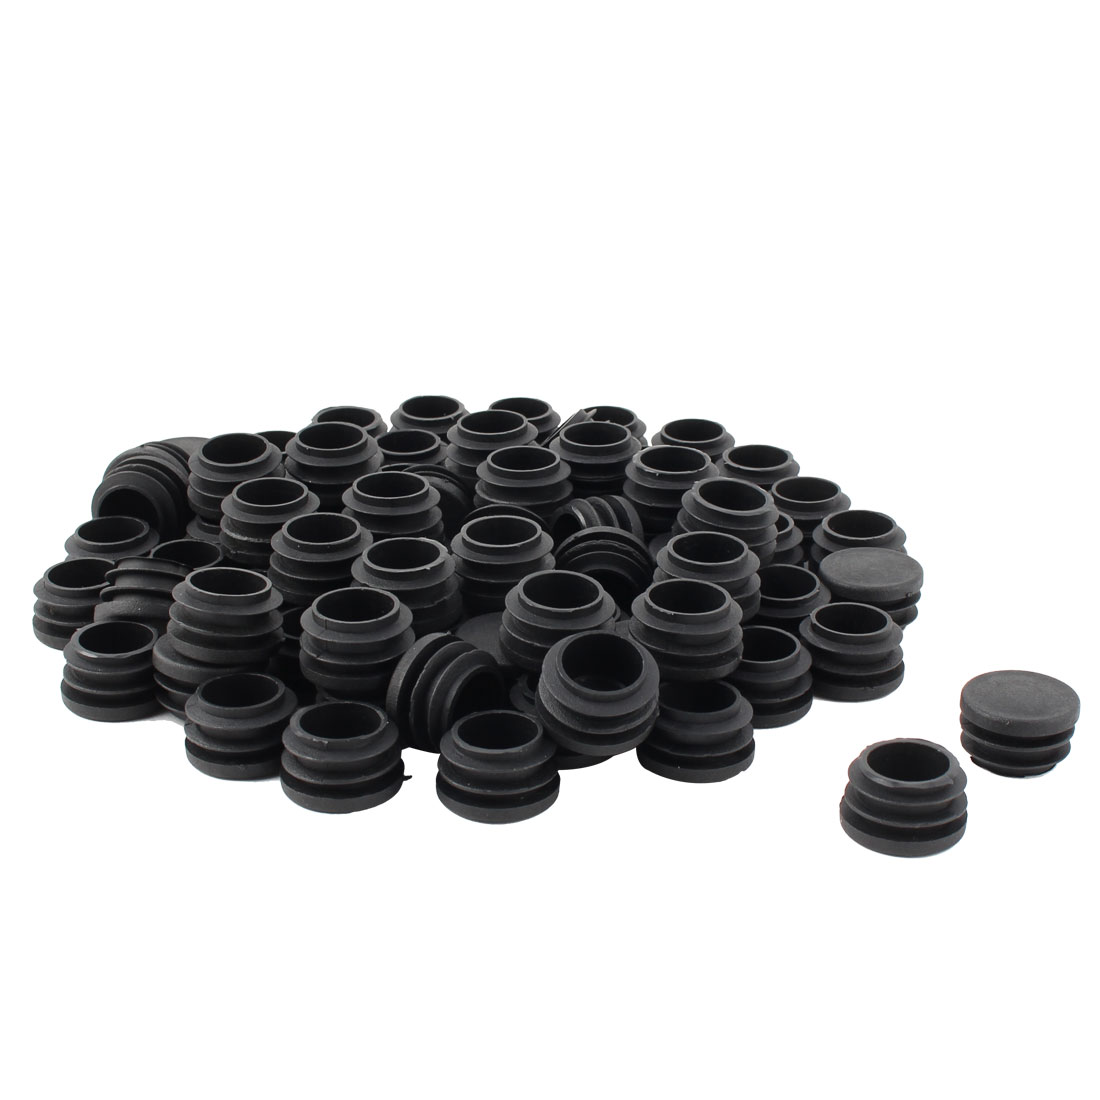 Furniture Table Chair Legs Plastic Flat Base Round Tube Pipe Insert Cap Cover Black 28mm Dia 80pcs